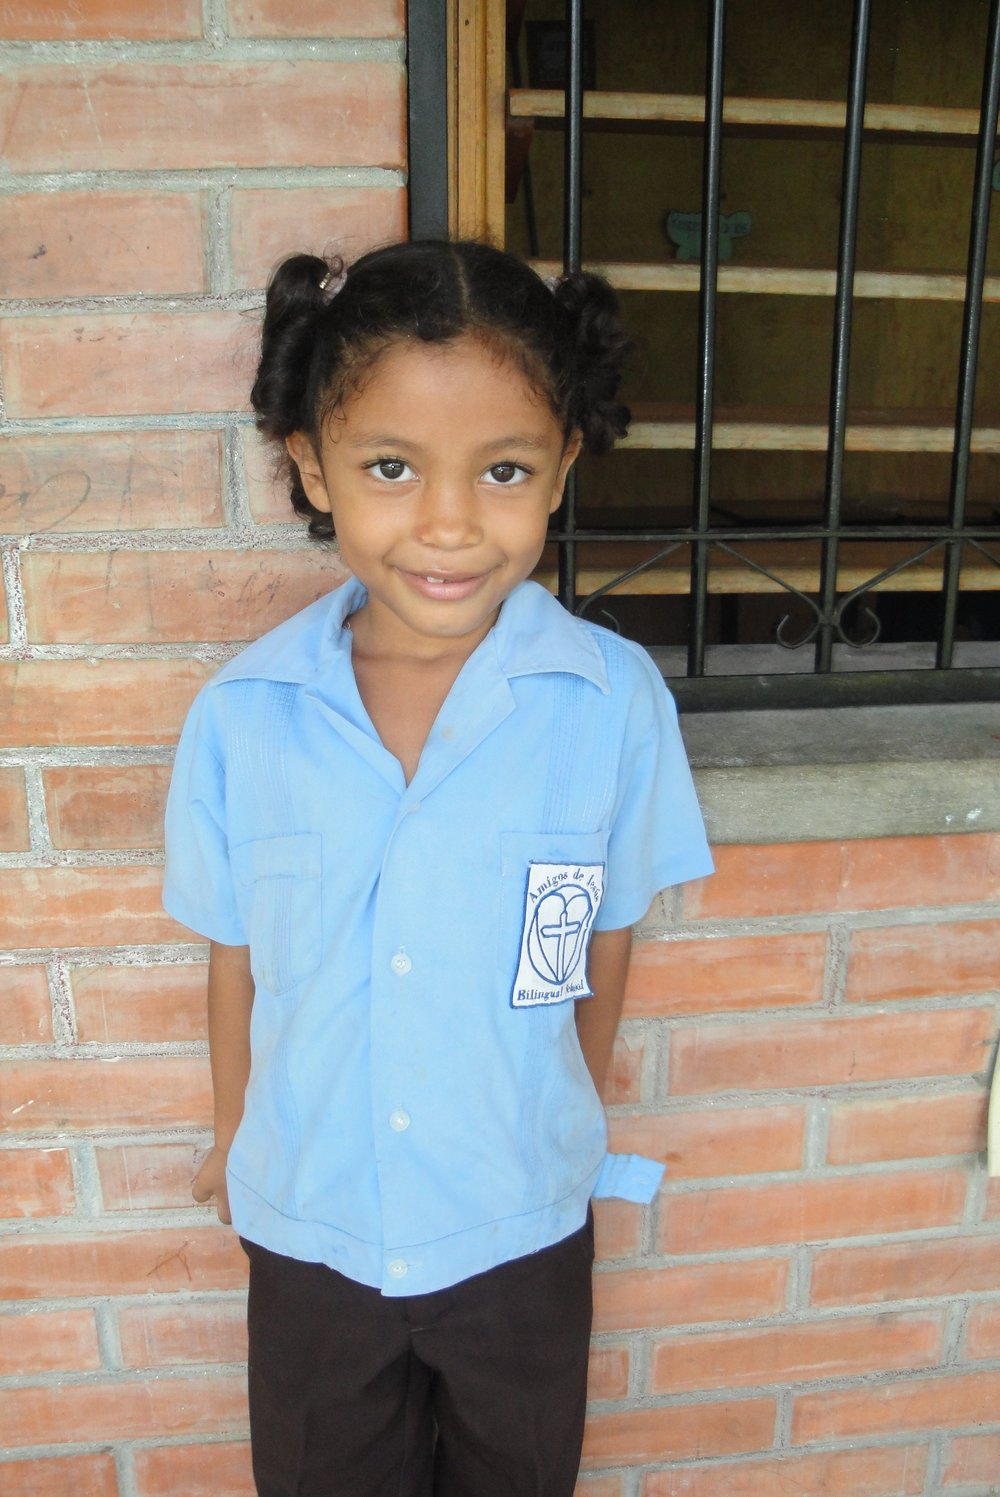 Soledad in her school uniform back in 2014.